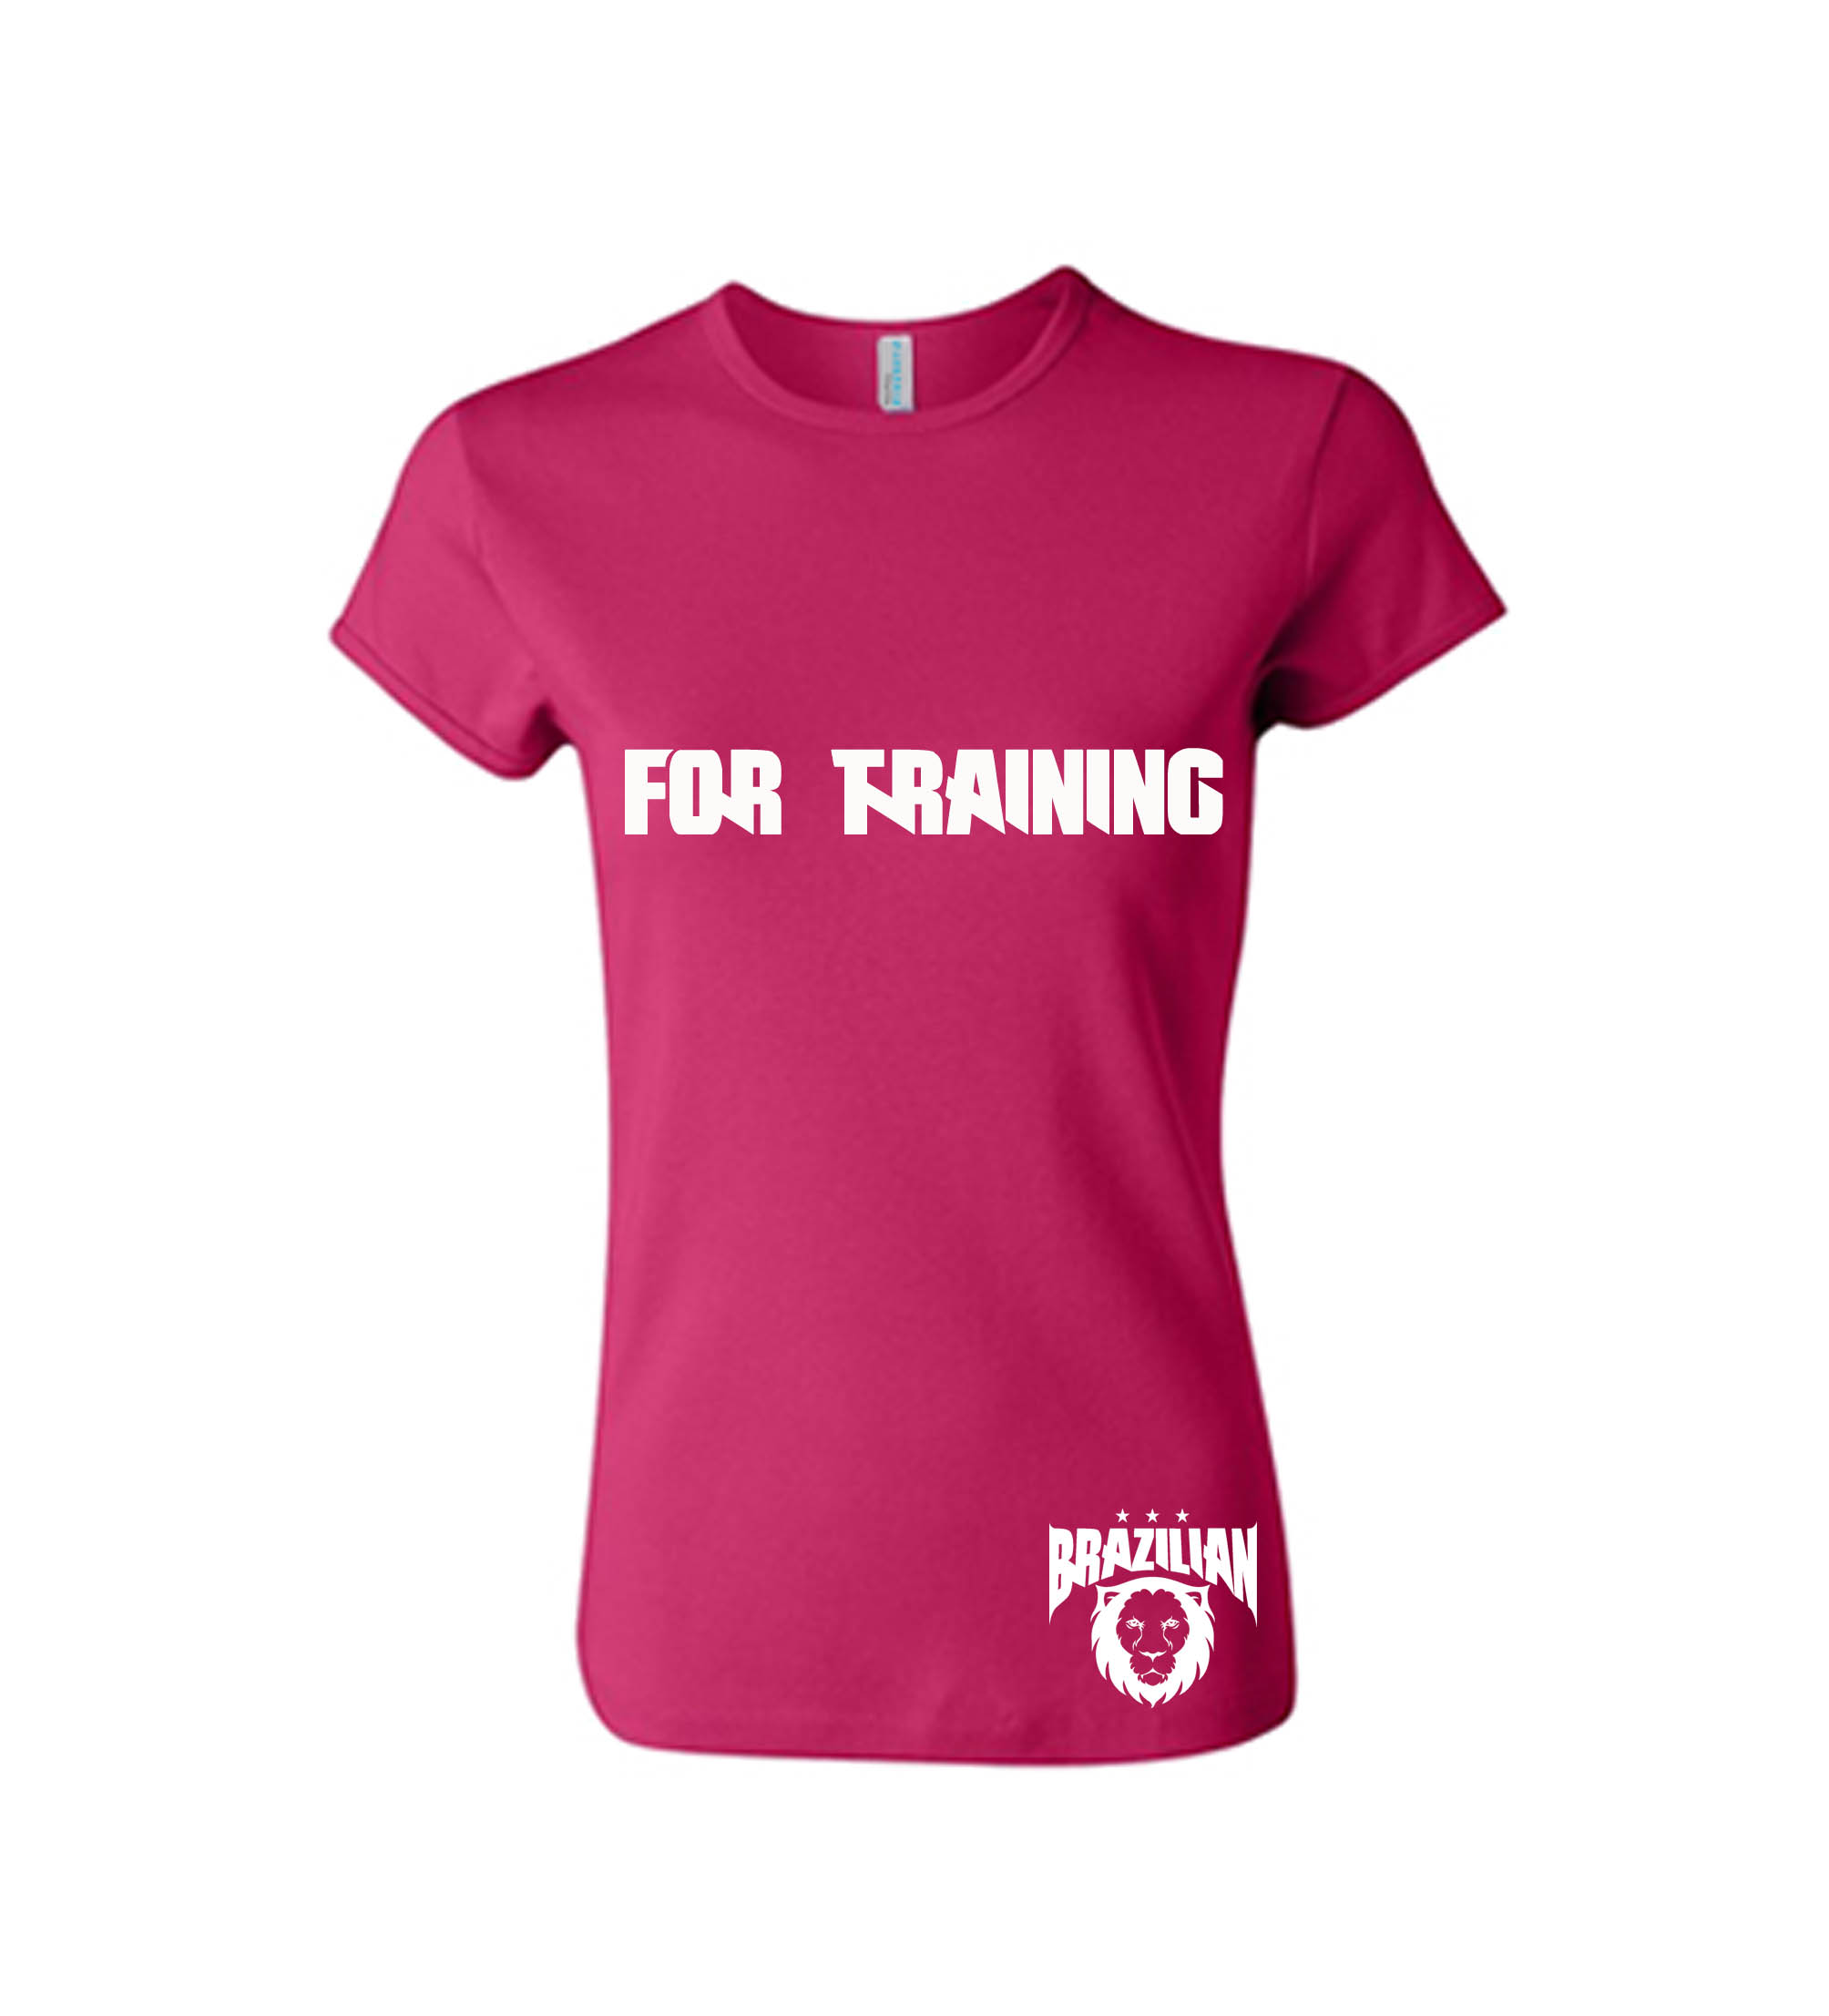 MODELO BABY LOOK feminina rosa for training 2